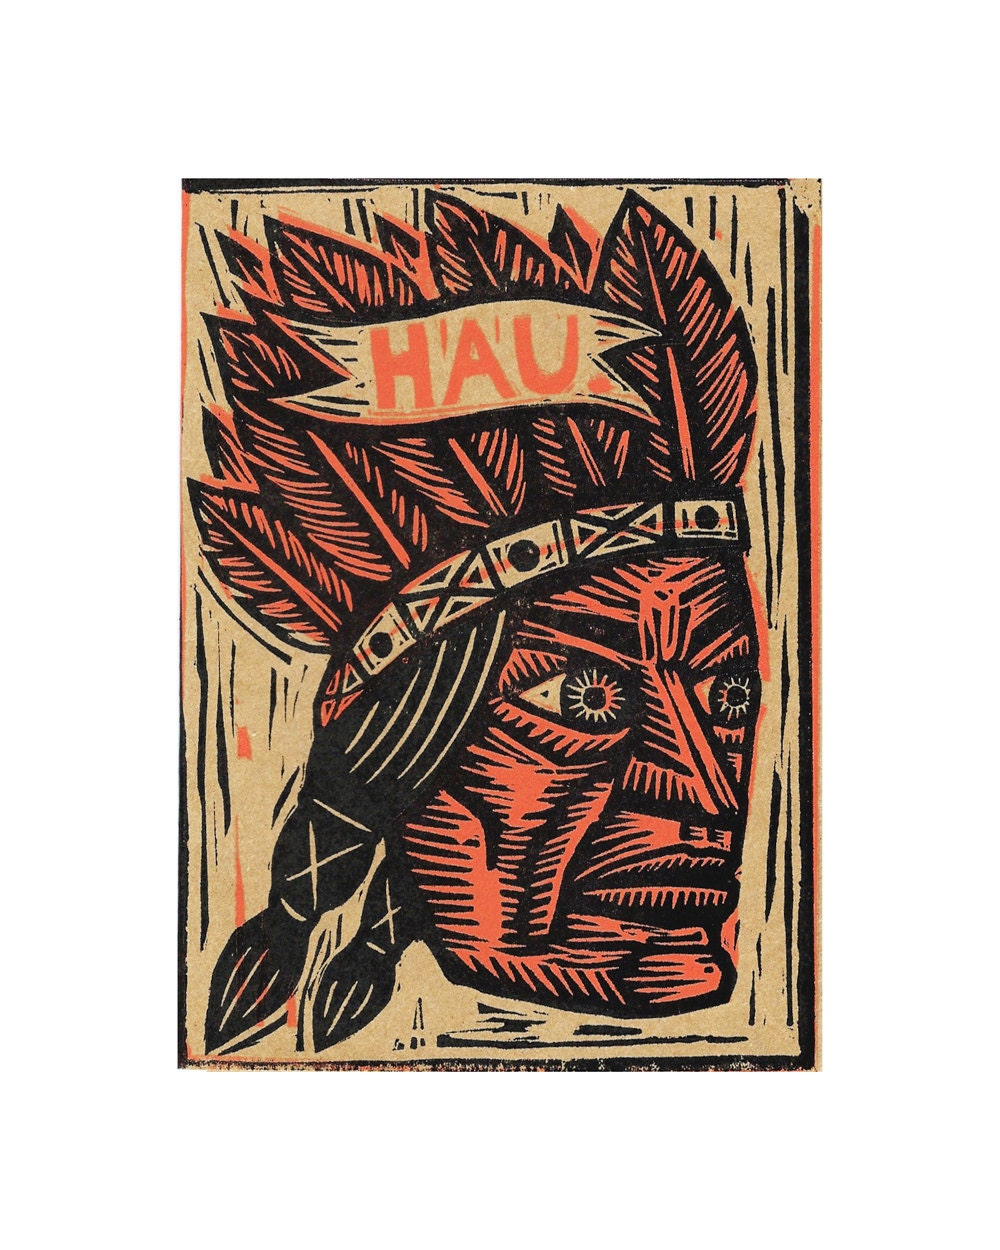 Native American Greeting Card Hau Linocut Letterpress Card Etsy